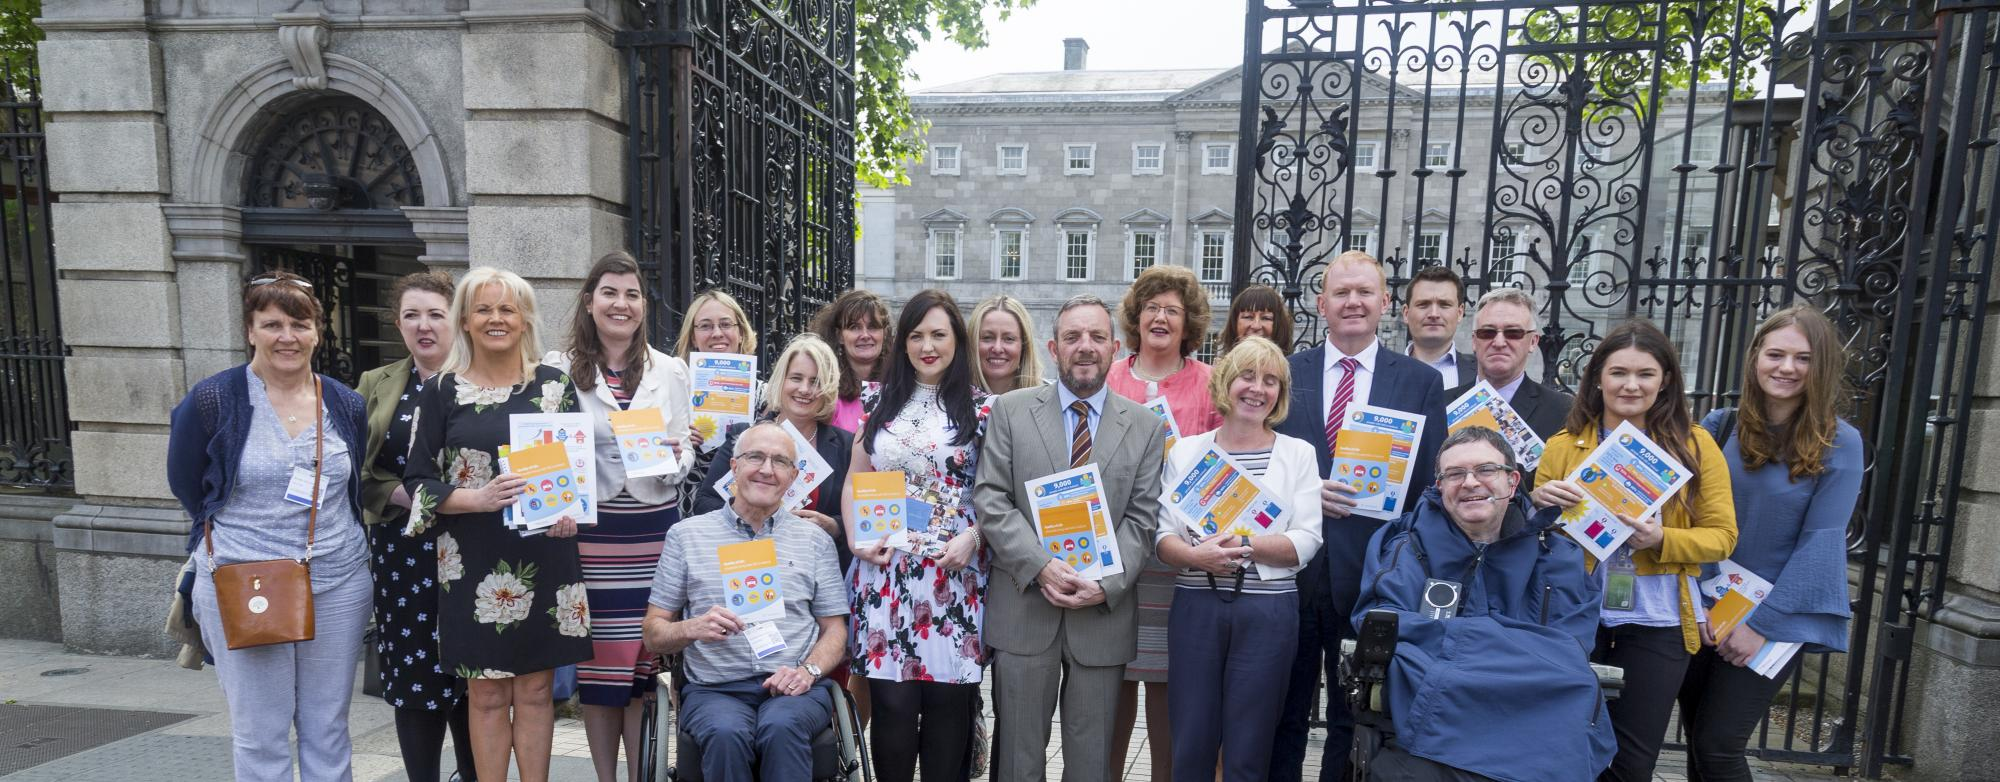 Leinster house Group